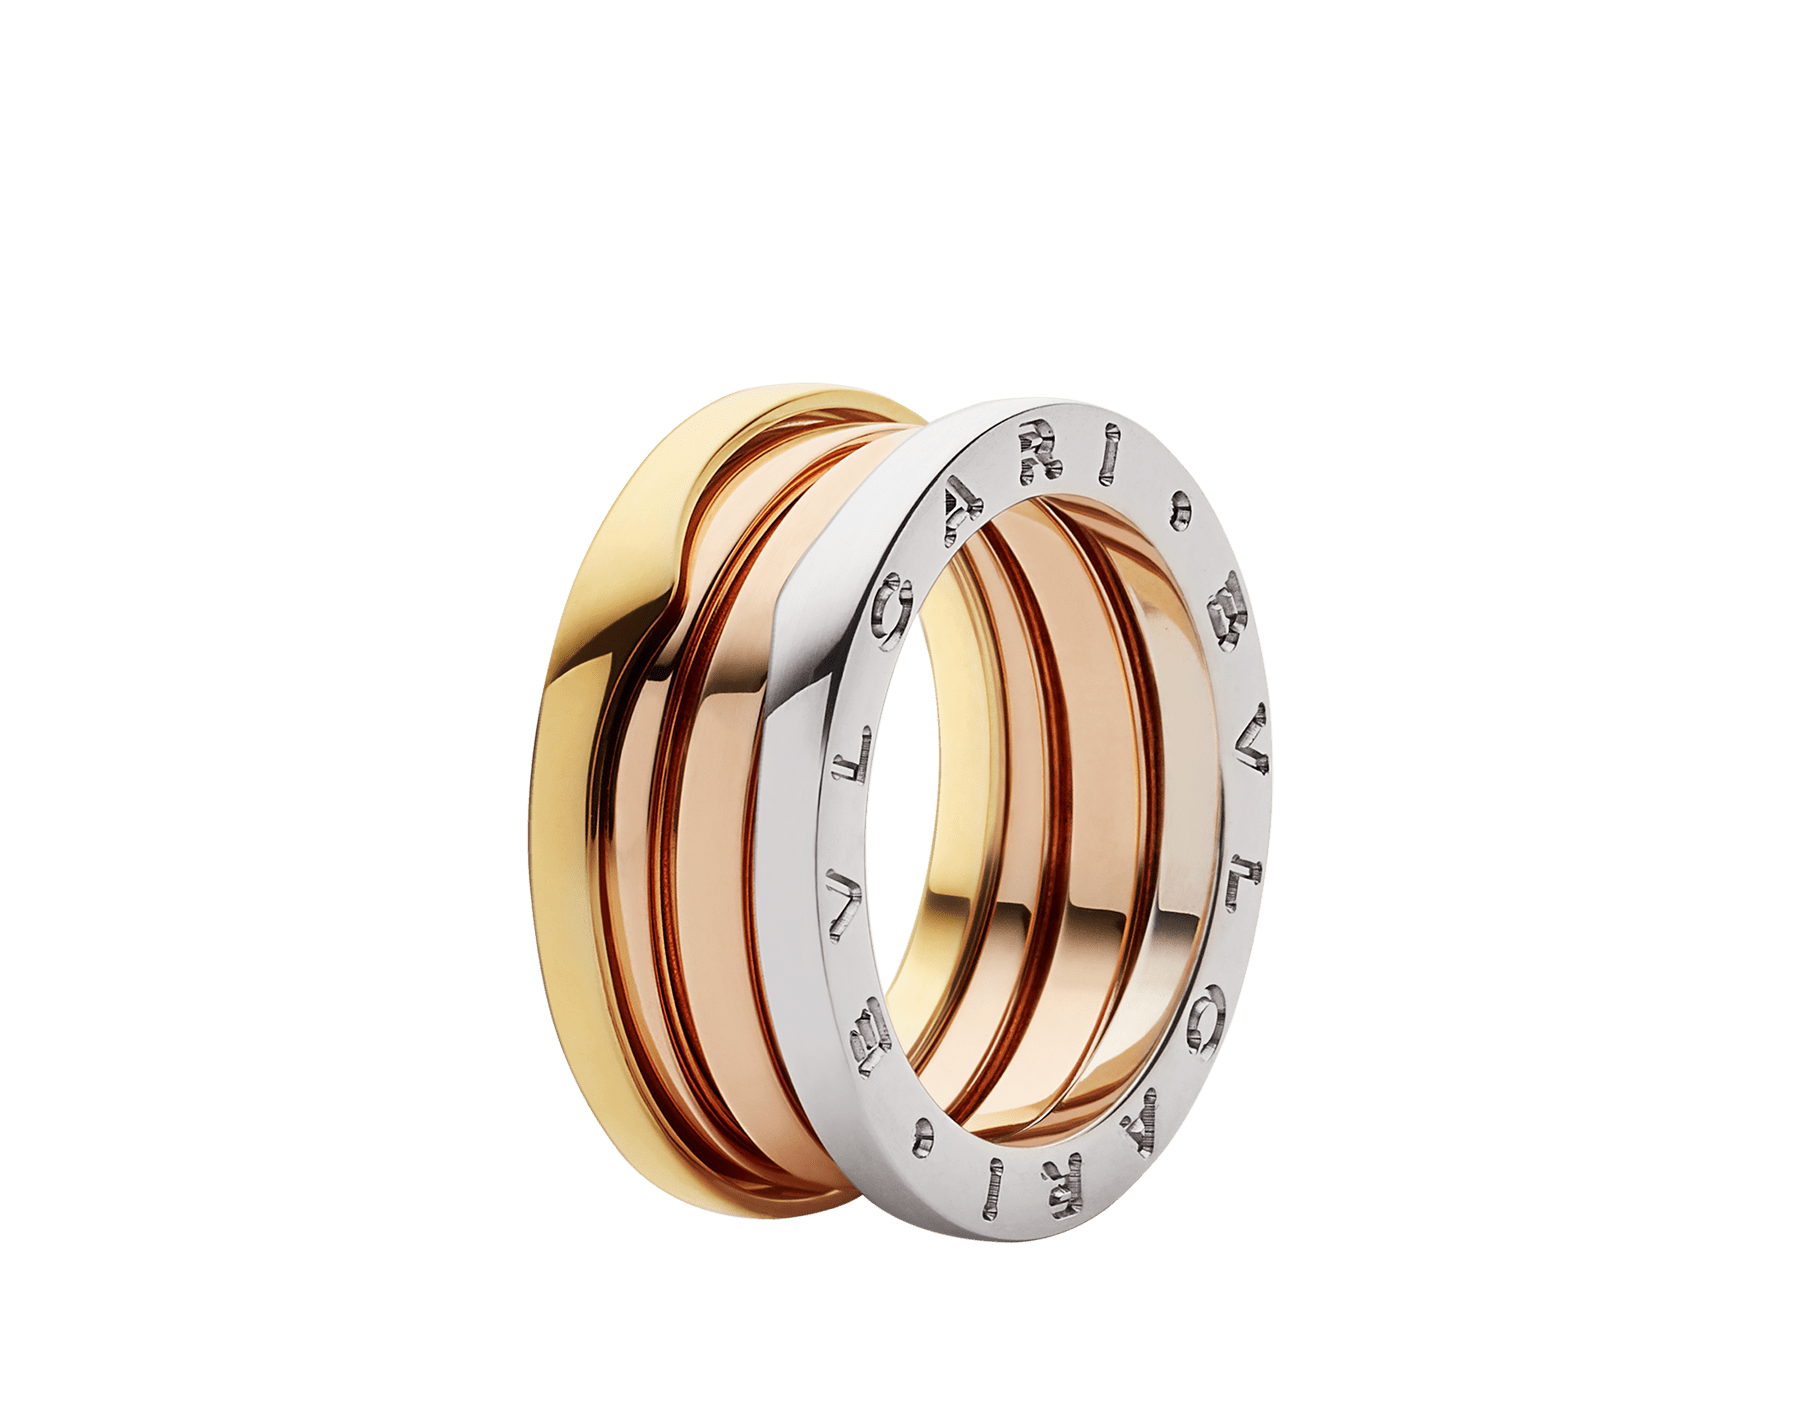 B.zero1 three-band ring in 18 kt rose, white and yellow gold. B-zero1-3-bands-AN857652 image 1